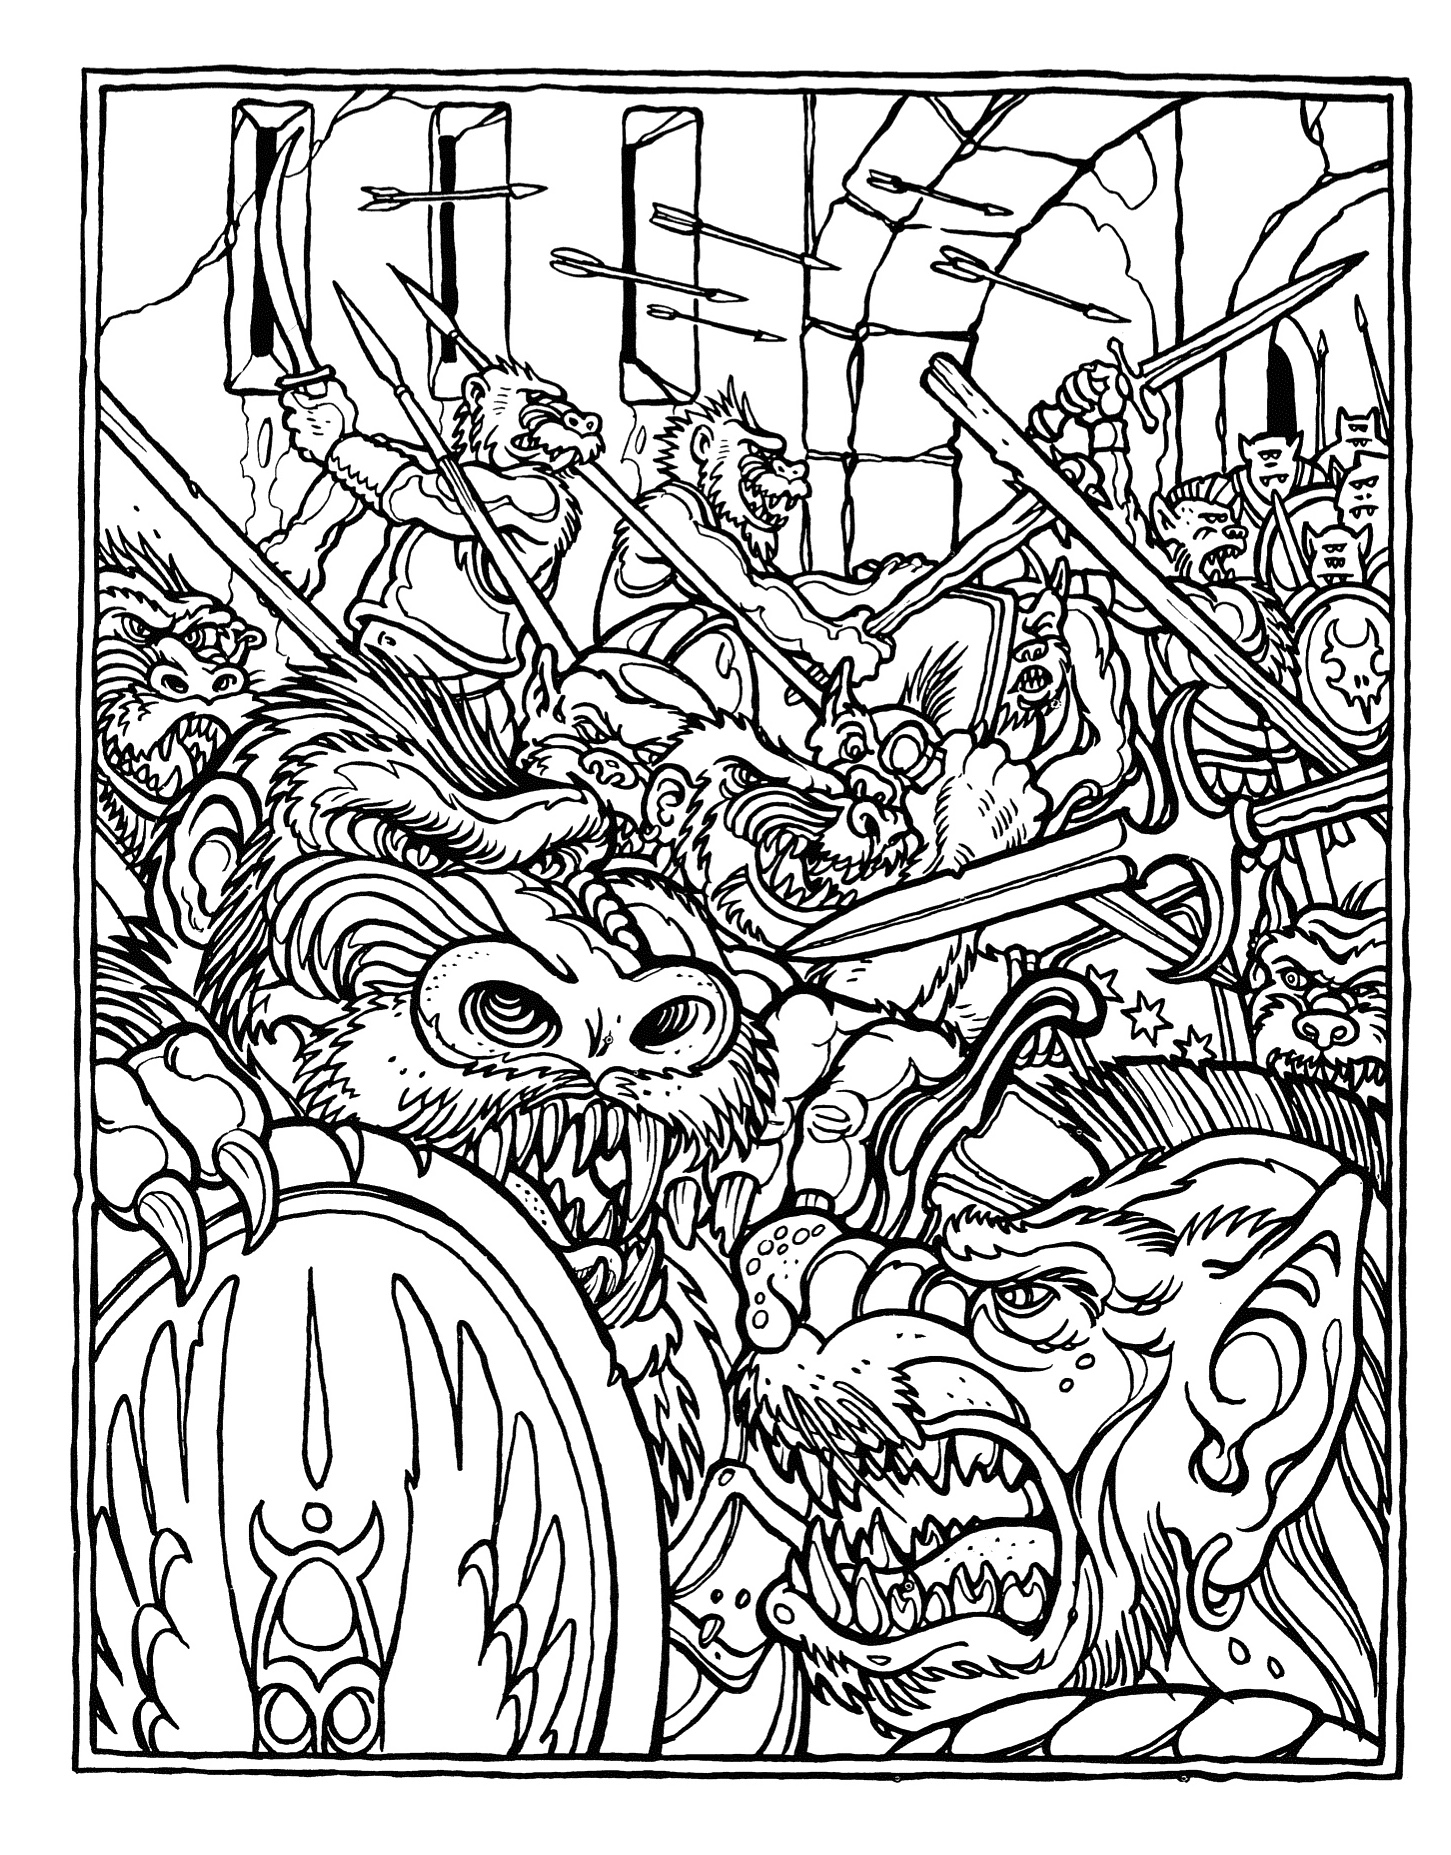 Download Advanced Coloring Pages : Monster brains the official advanced dungeons and dragons